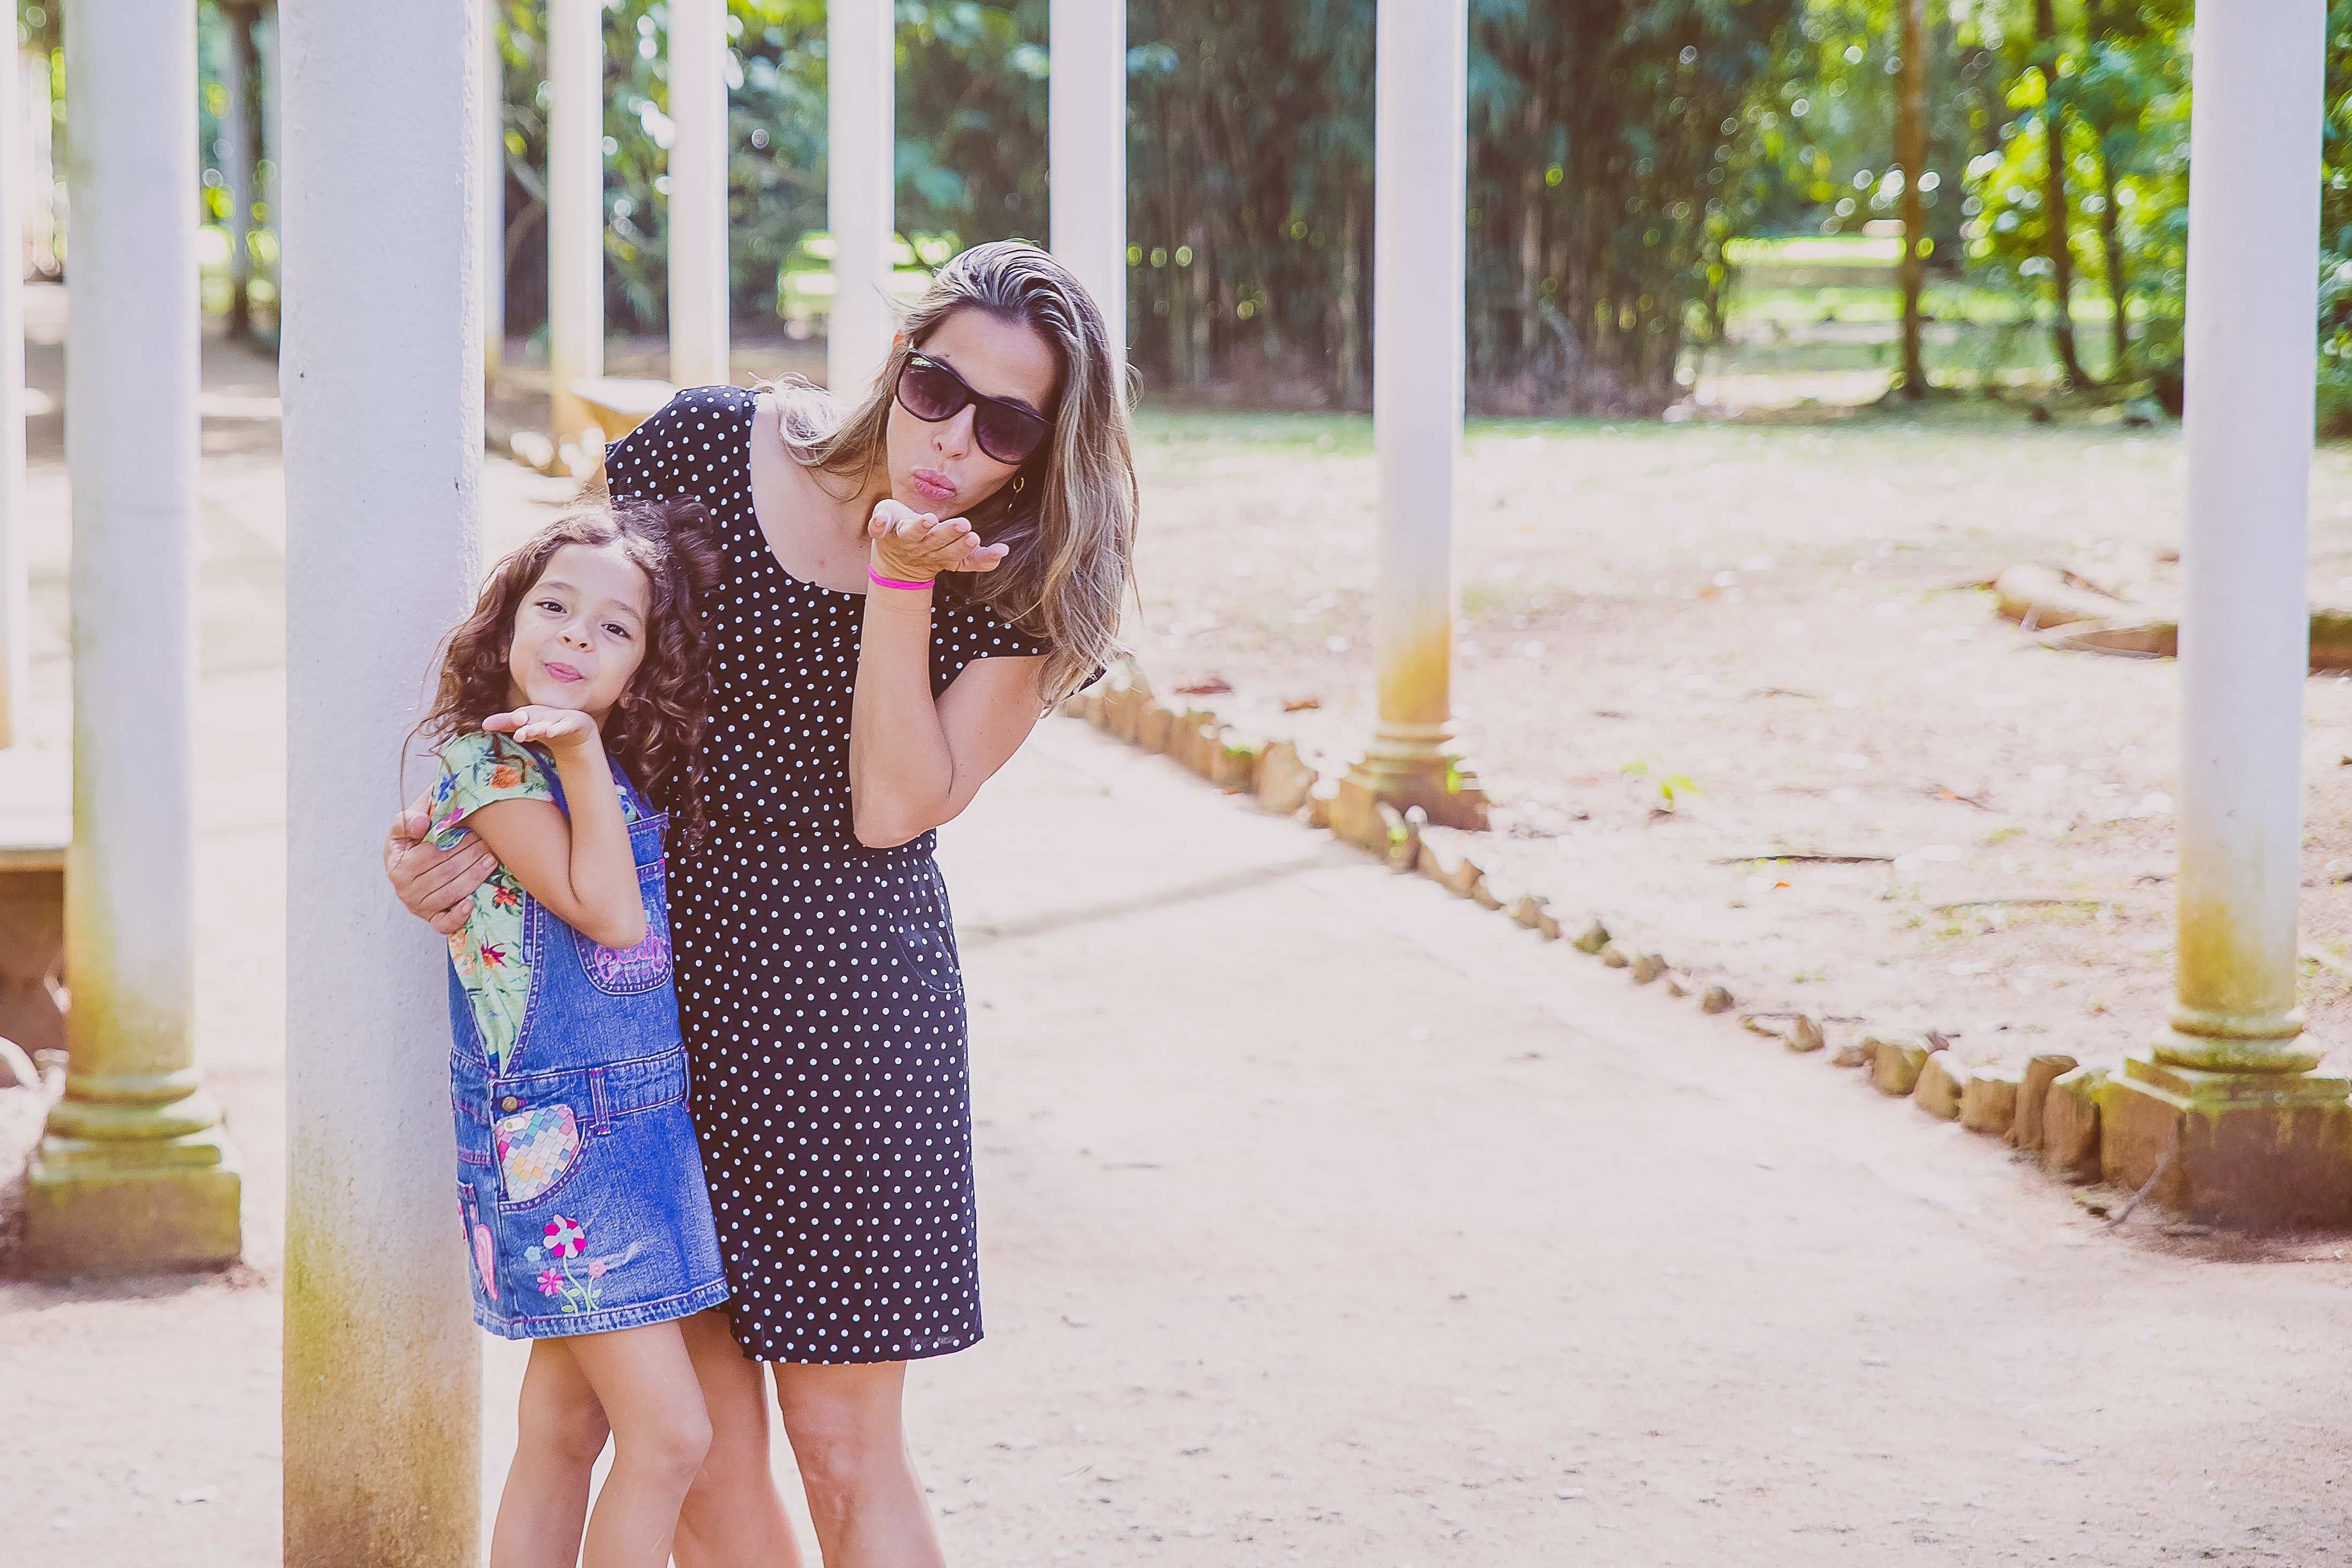 A woman puts her arm around a young girl, and both blow kisses